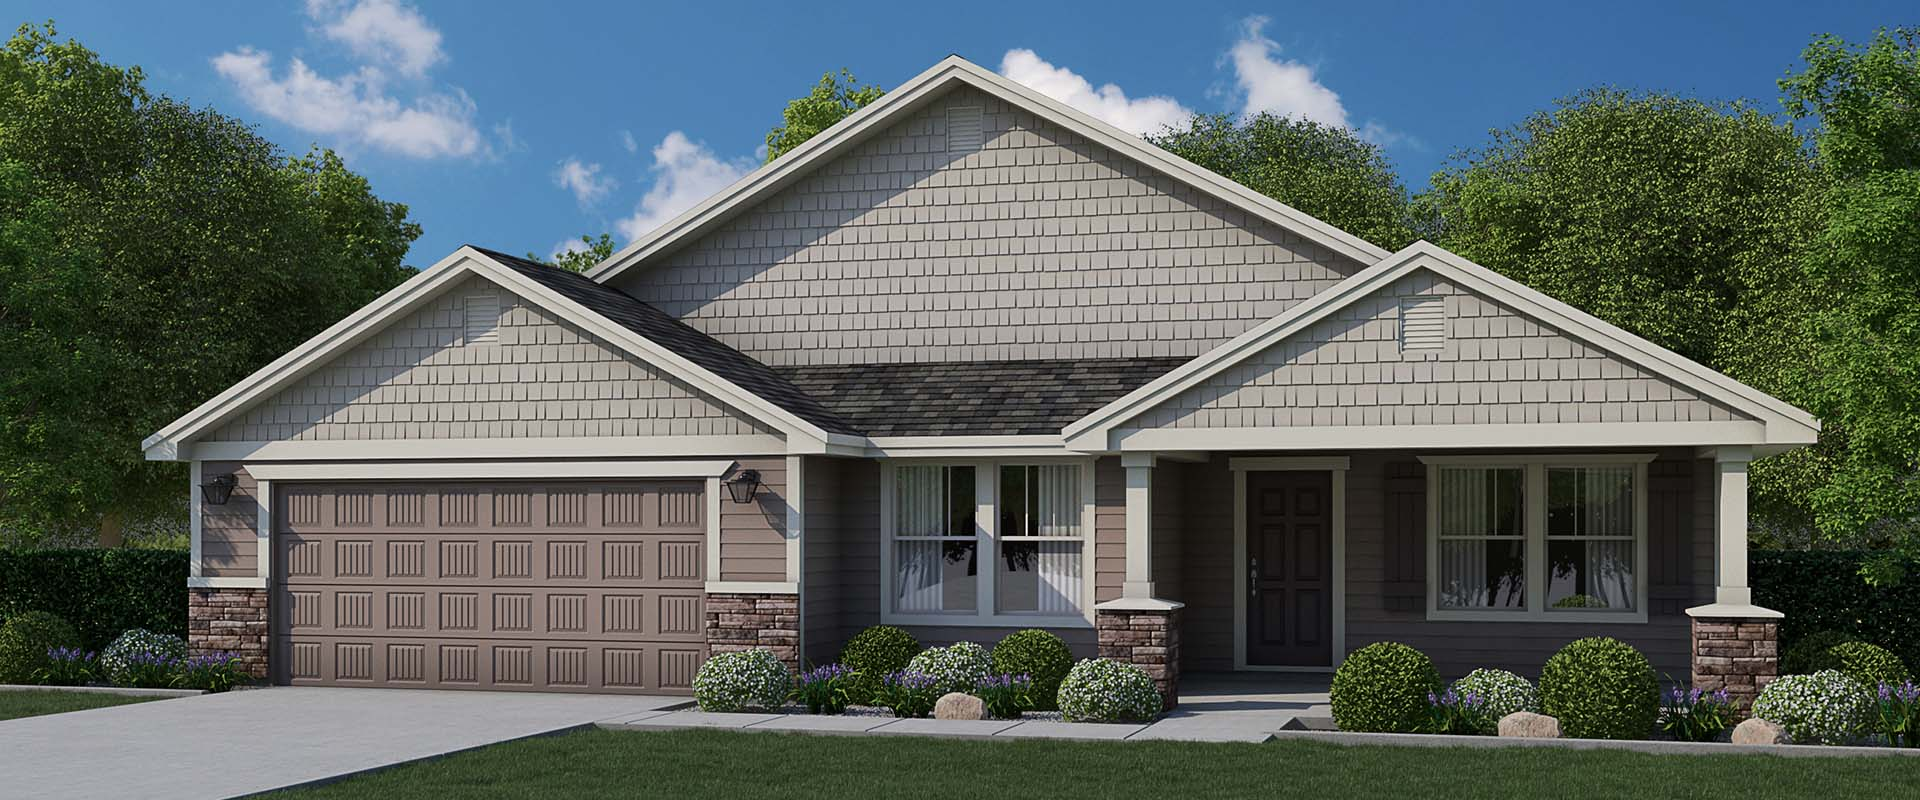 Emerald-new-homes-boise-idaho-hubble-homes_0002_Emerald Craftsman_Pack 121.jpg